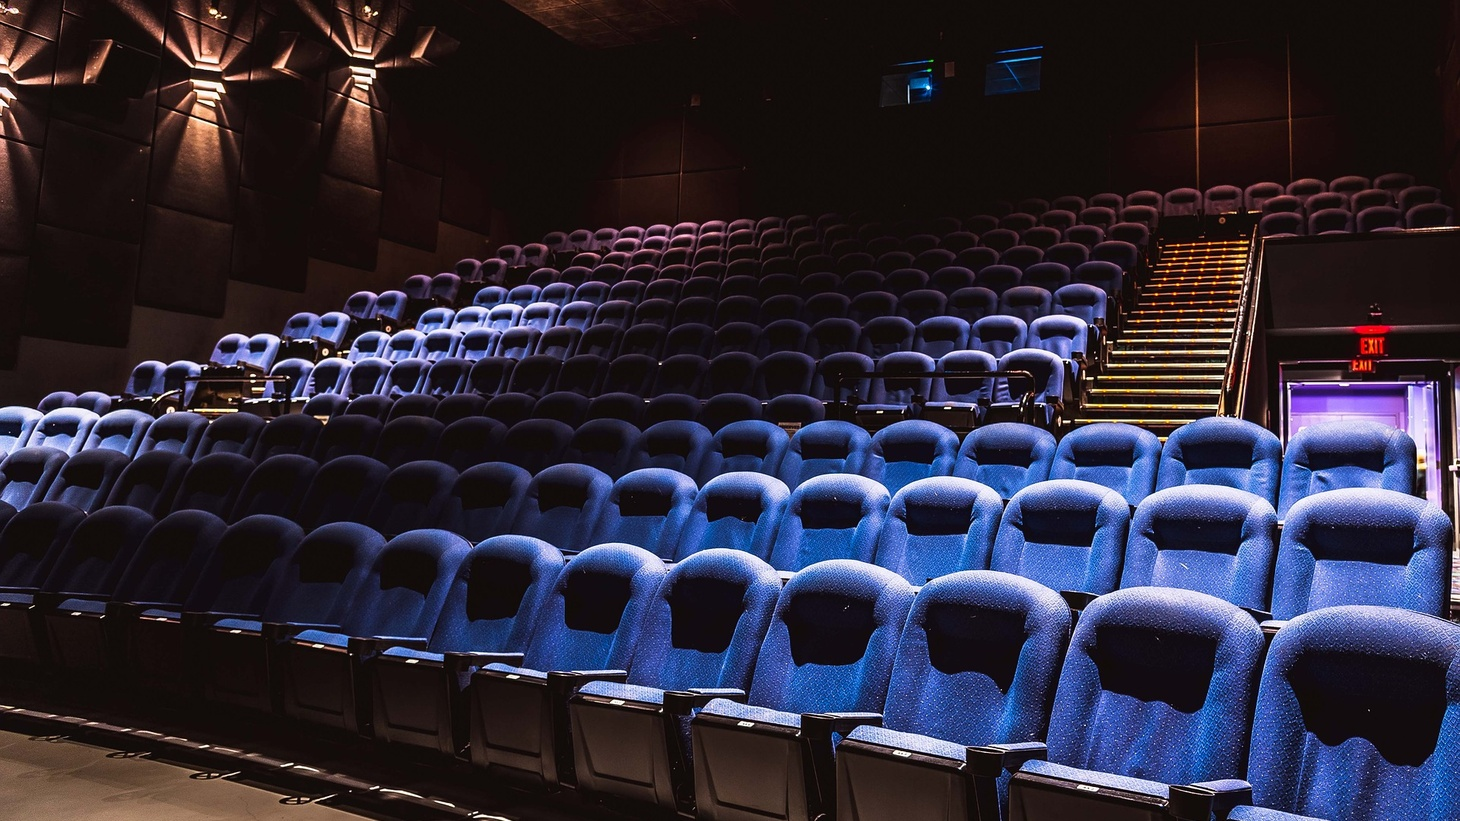 Some Southern states are eager to reopen businesses. But movie theater owners say not so fast.